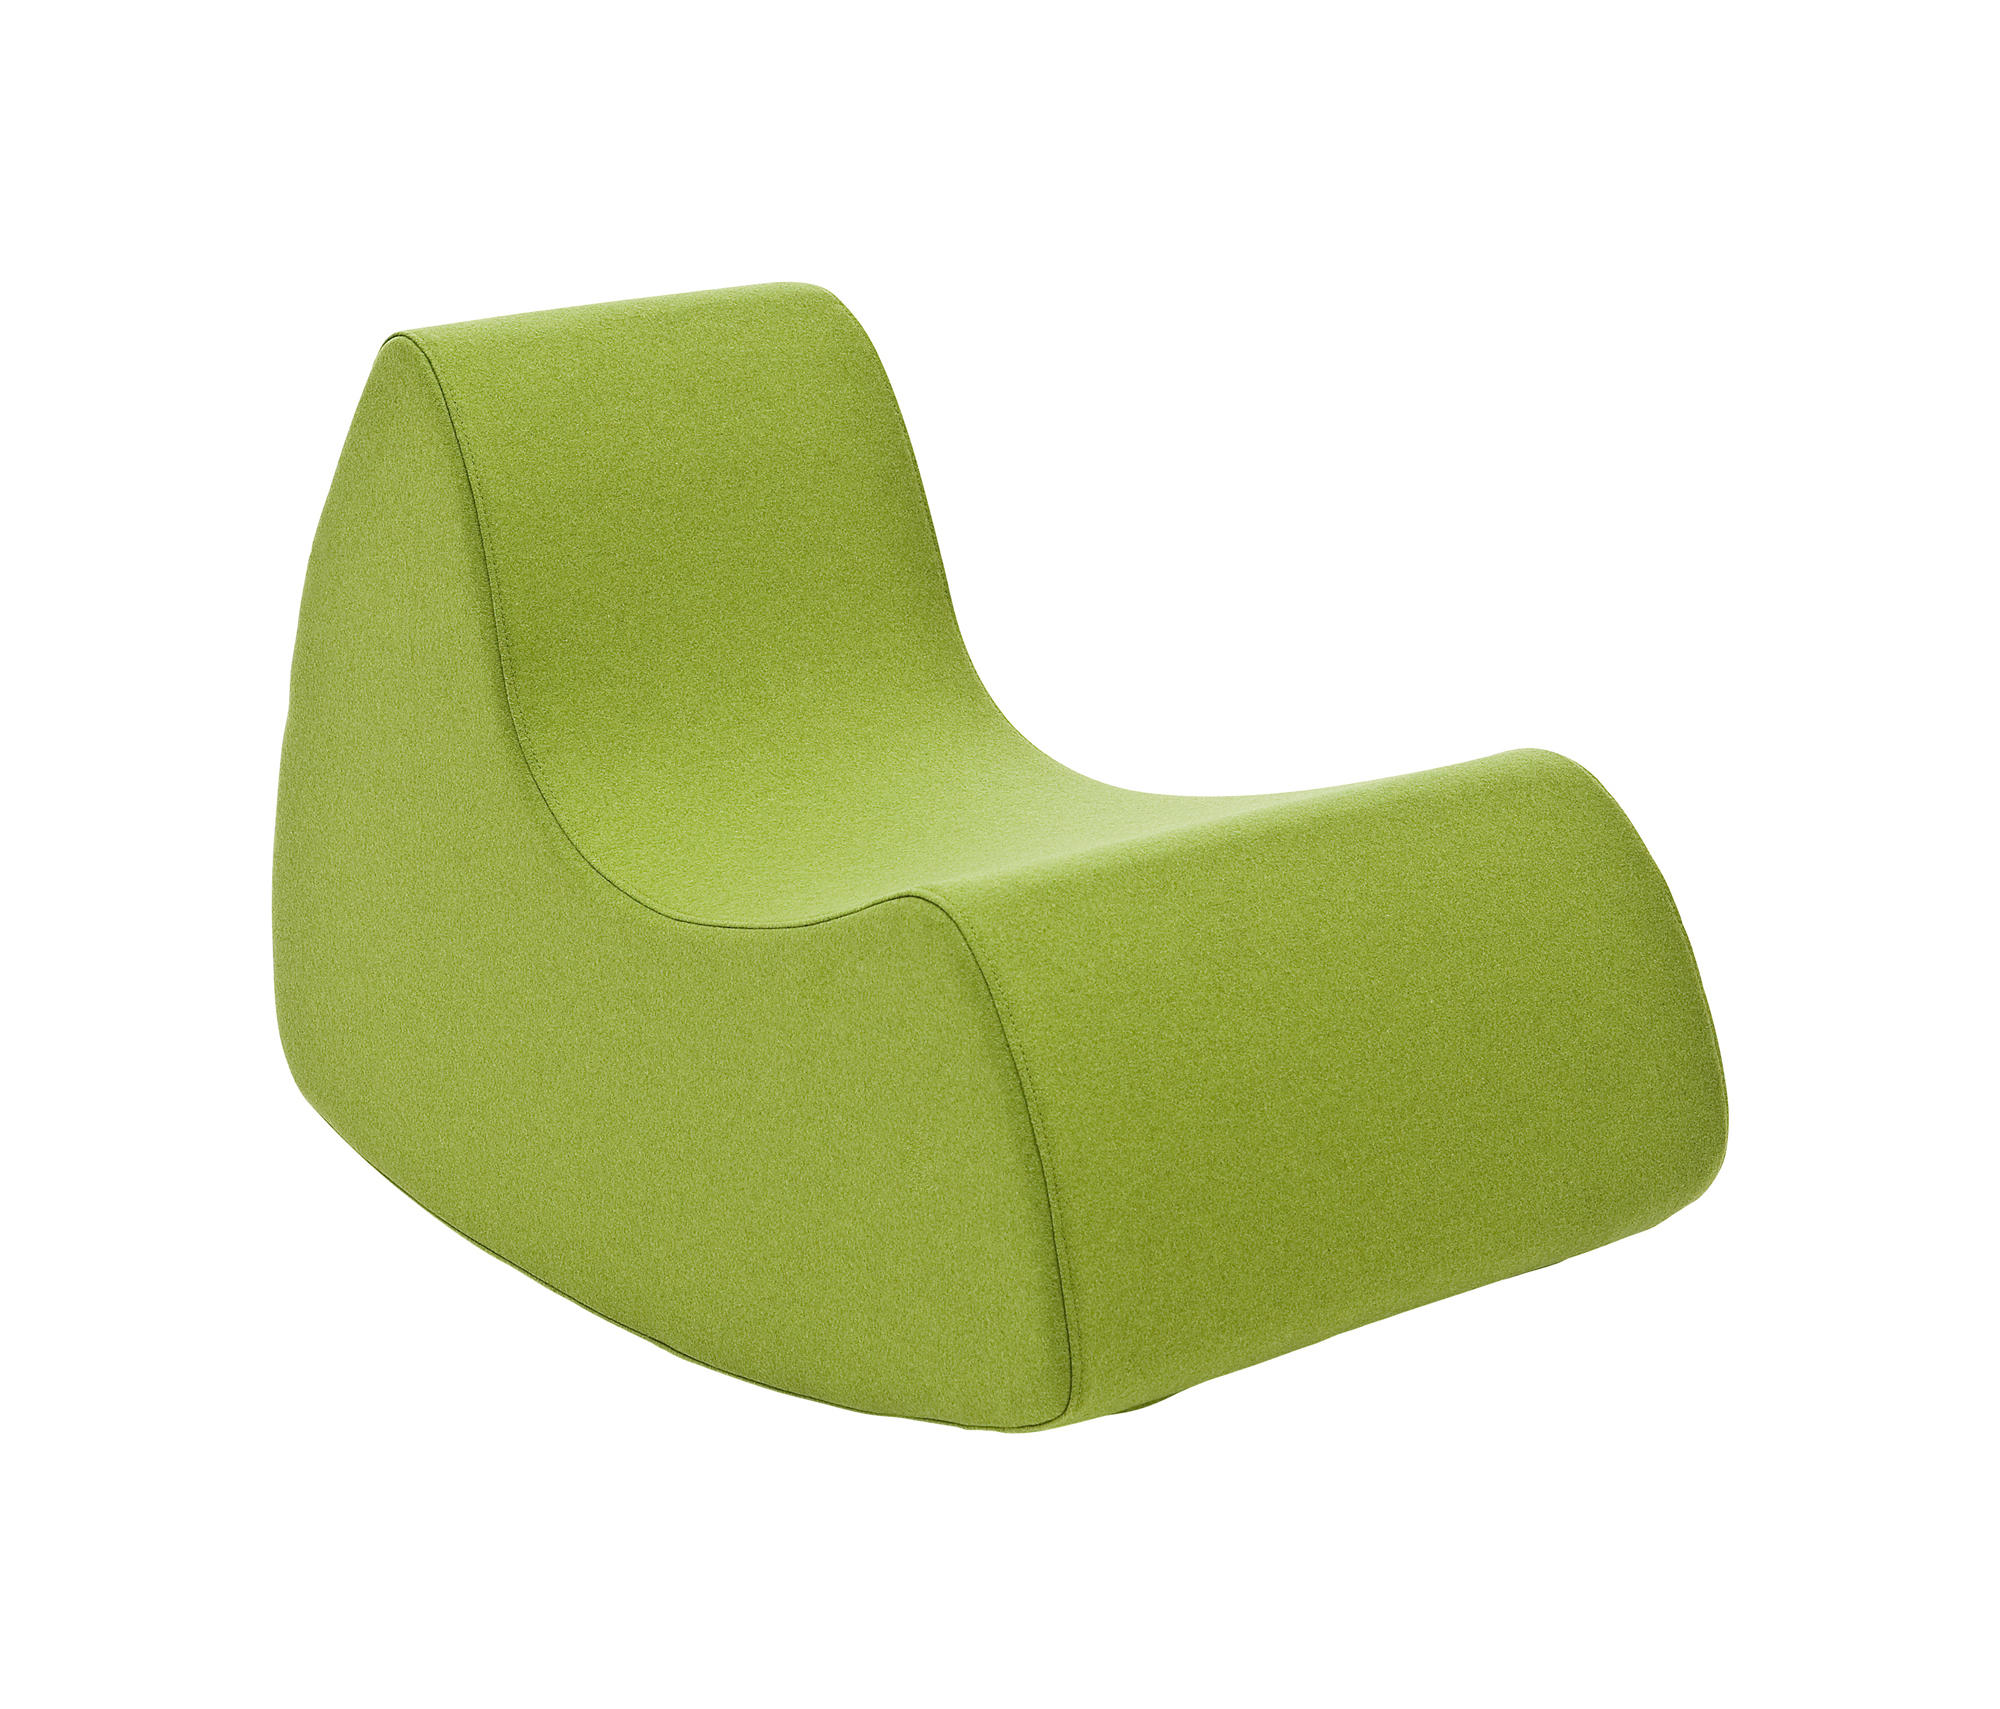 rocking bag chair infinity massage reviews grand prix armchairs from softline a s architonic by